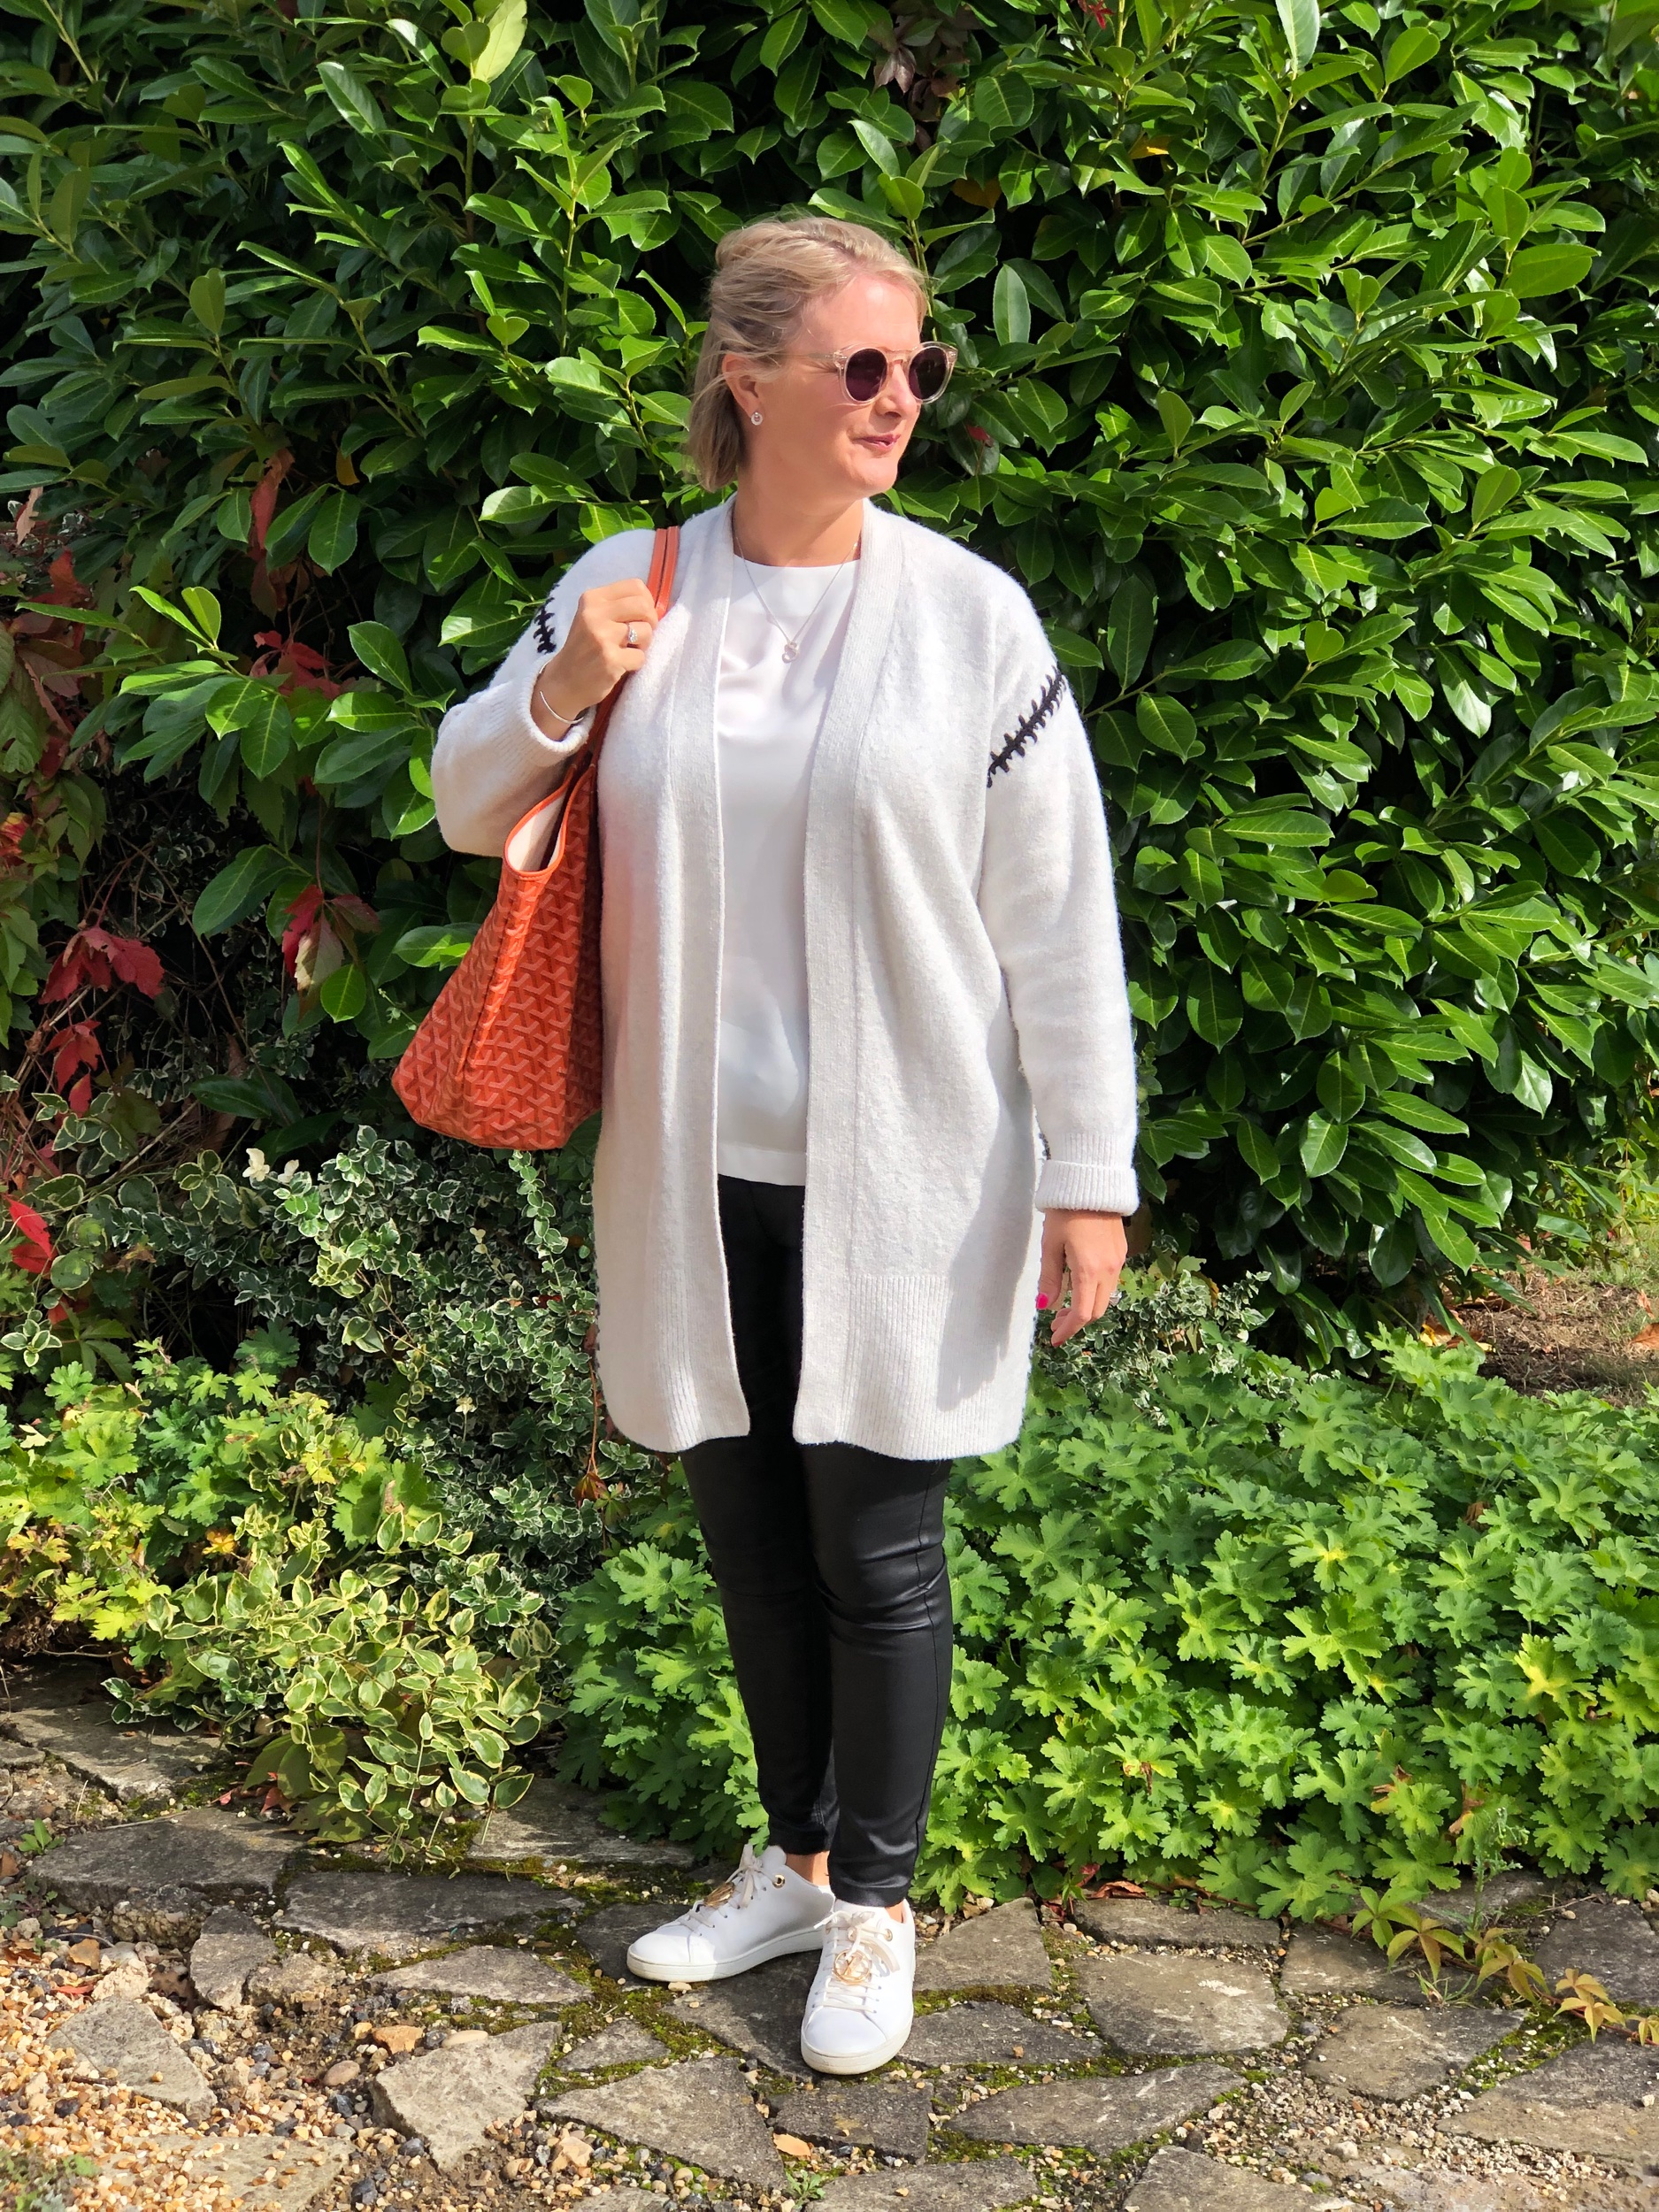 Top from Tommy Hilfiger, Jeggings from Next, Cardigan from The White Company, Shoes from Louis Vuitton, Bag from Goyard.